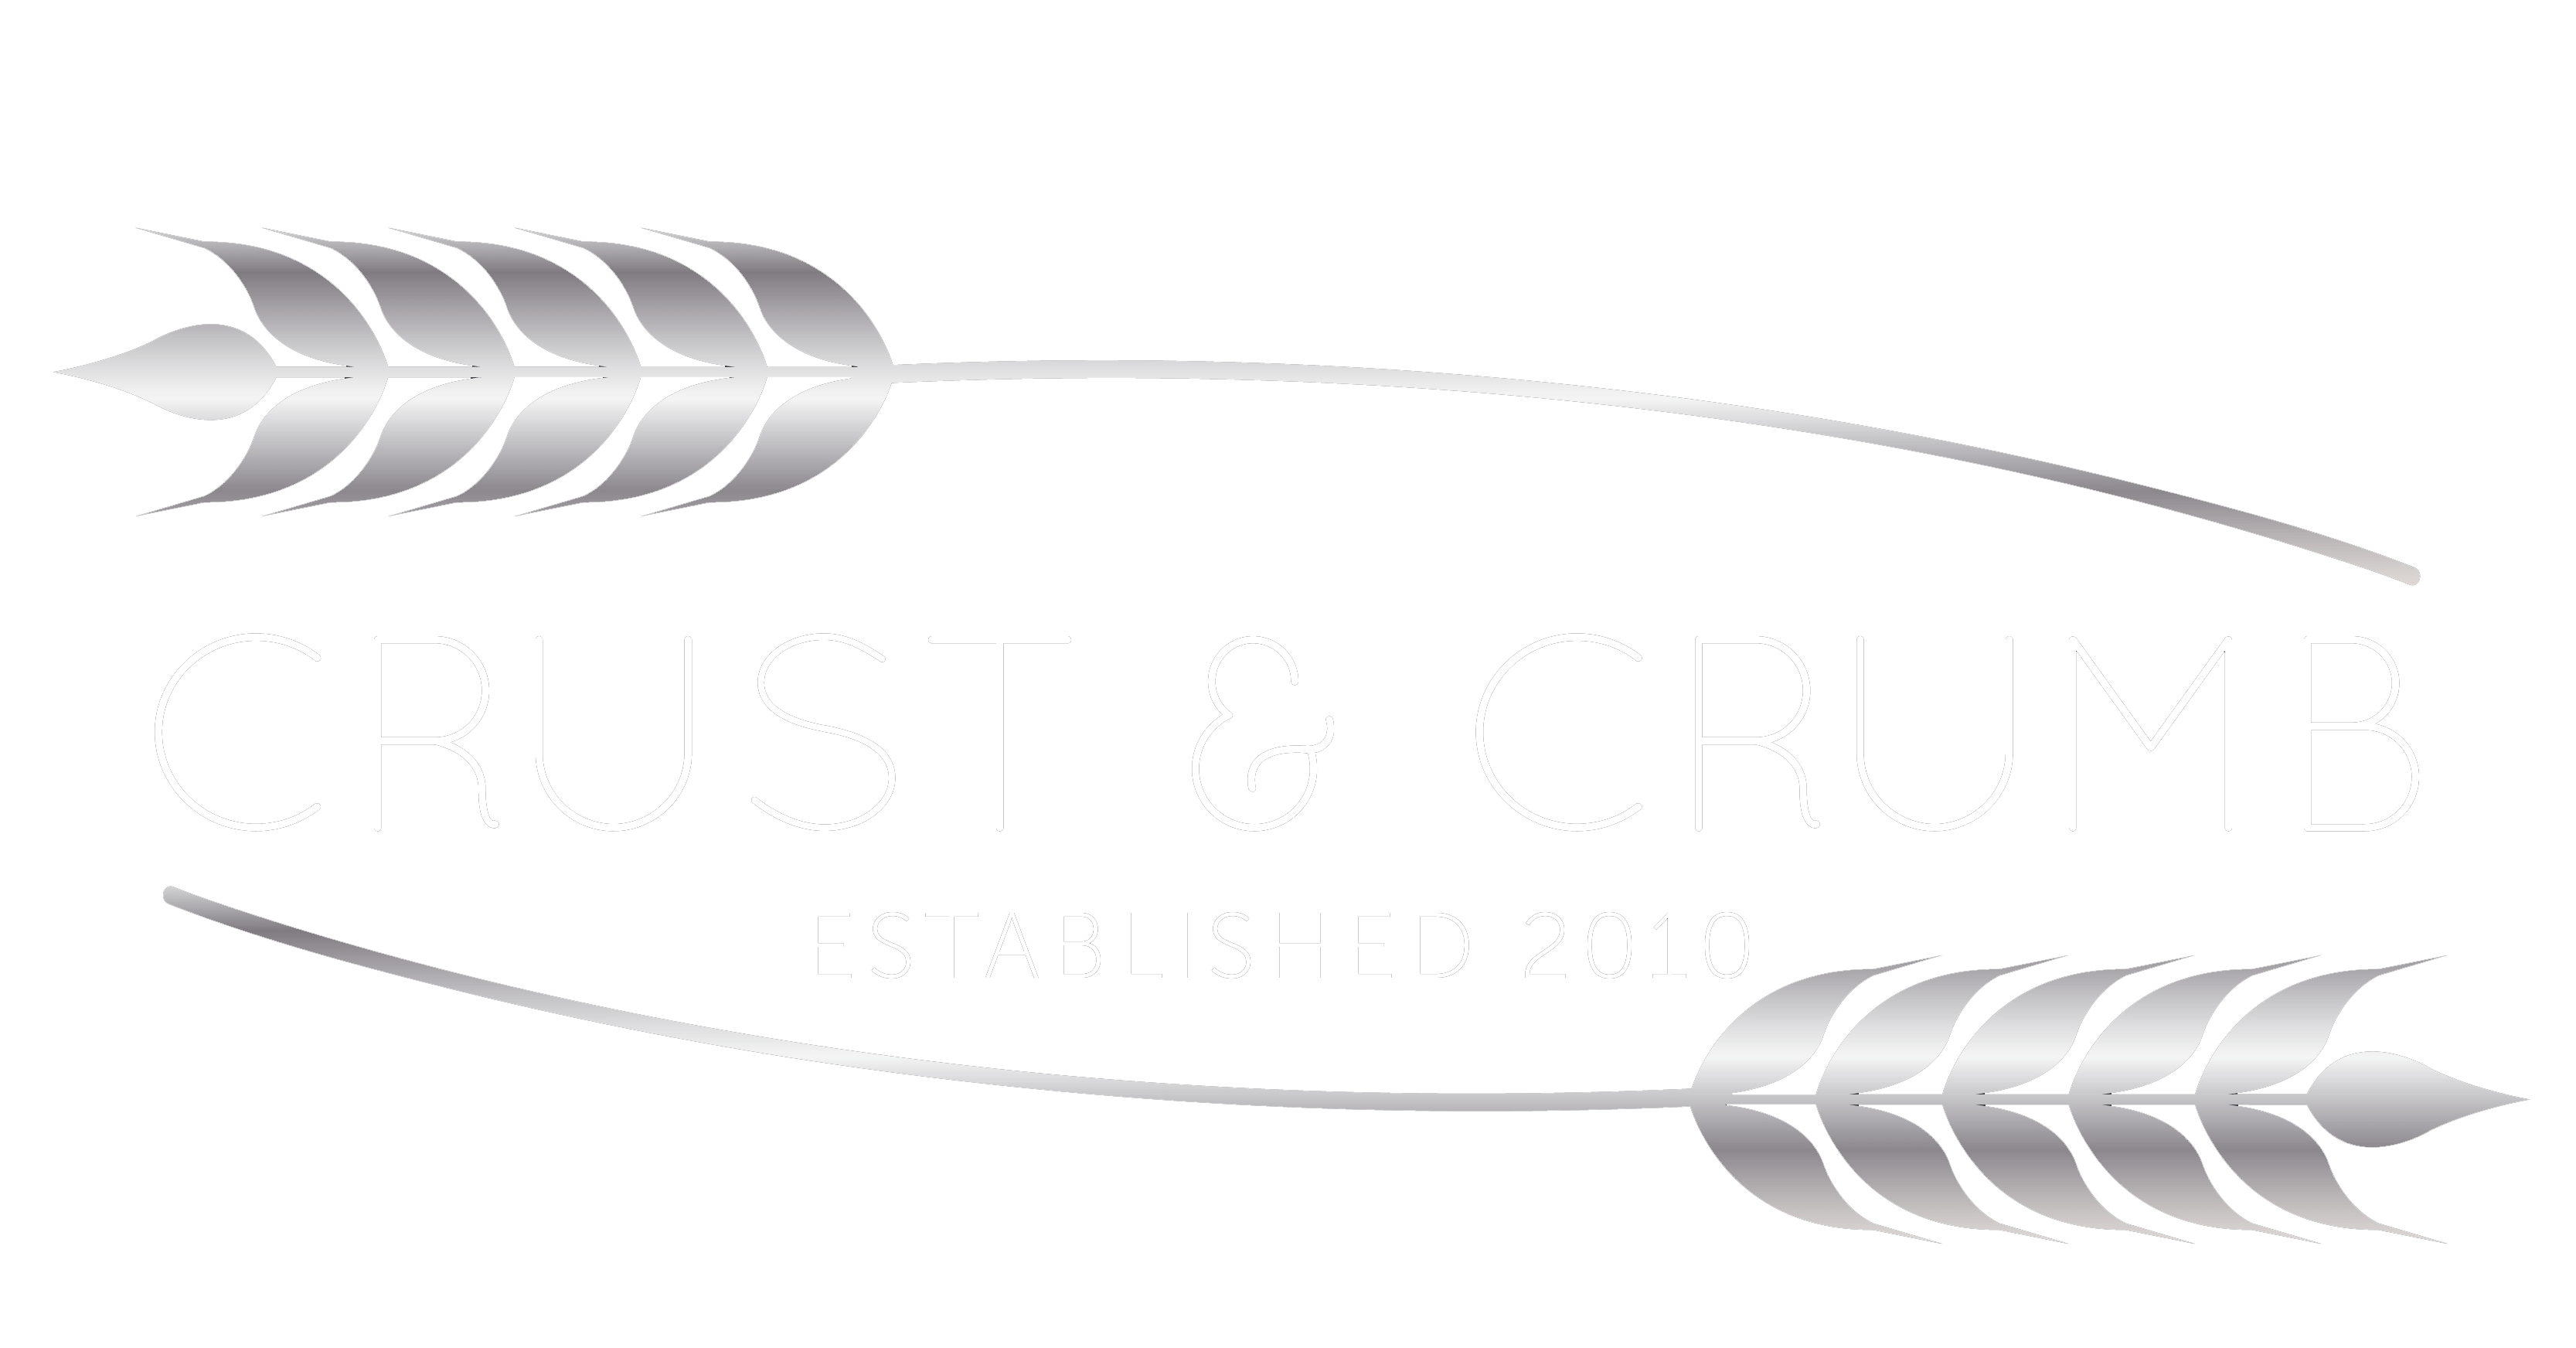 Crust & Crumb Cafe